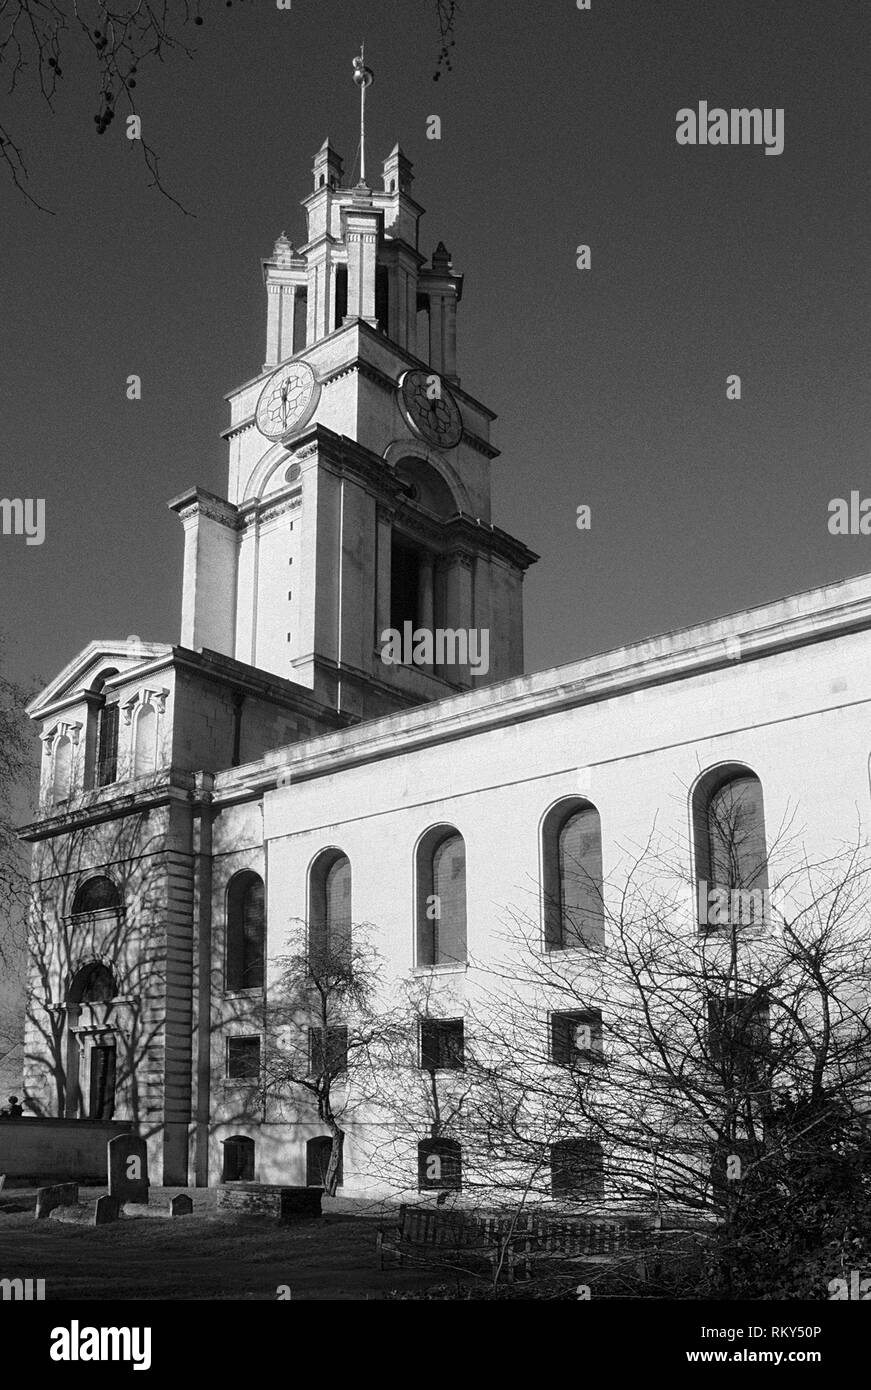 St Anne's church, Limehouse, in London's East End, Great Britain - Stock Image